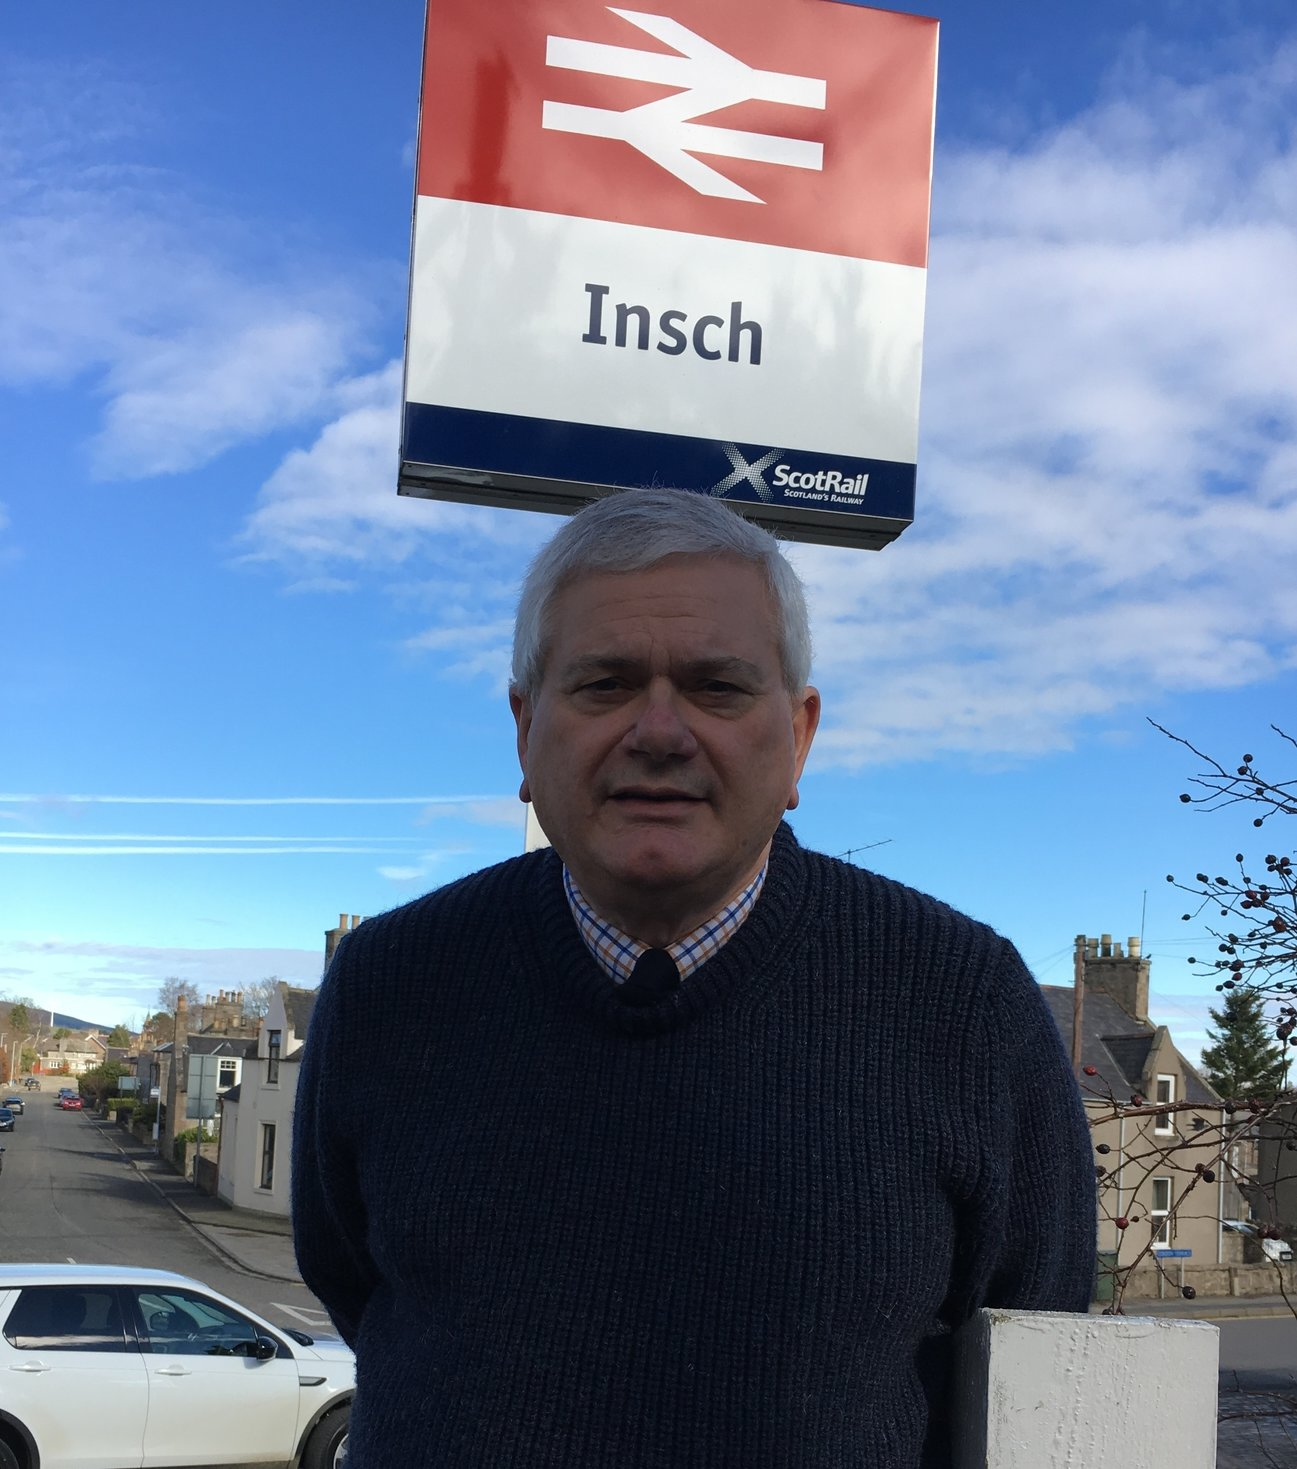 key_mike_at_insch_station.jpg